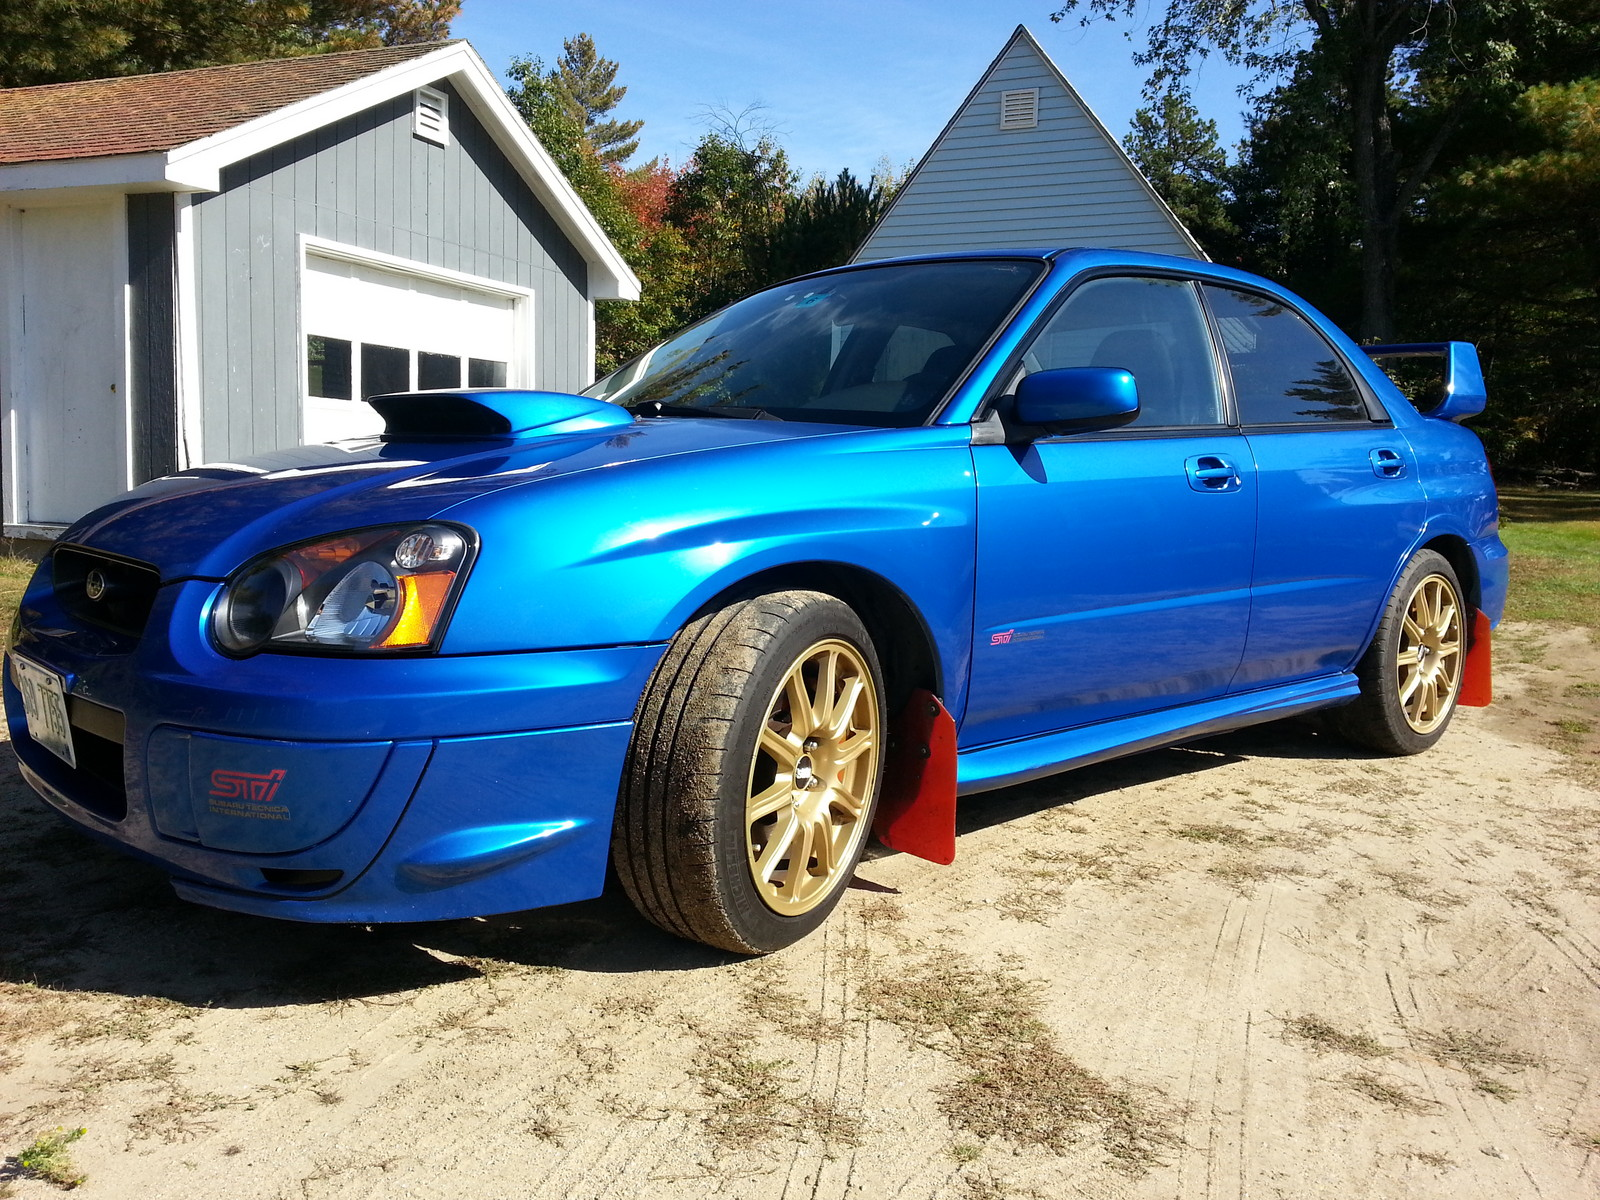 stock 2005 subaru wrx sti 1/4 mile trap speeds 0-60 - dragtimes